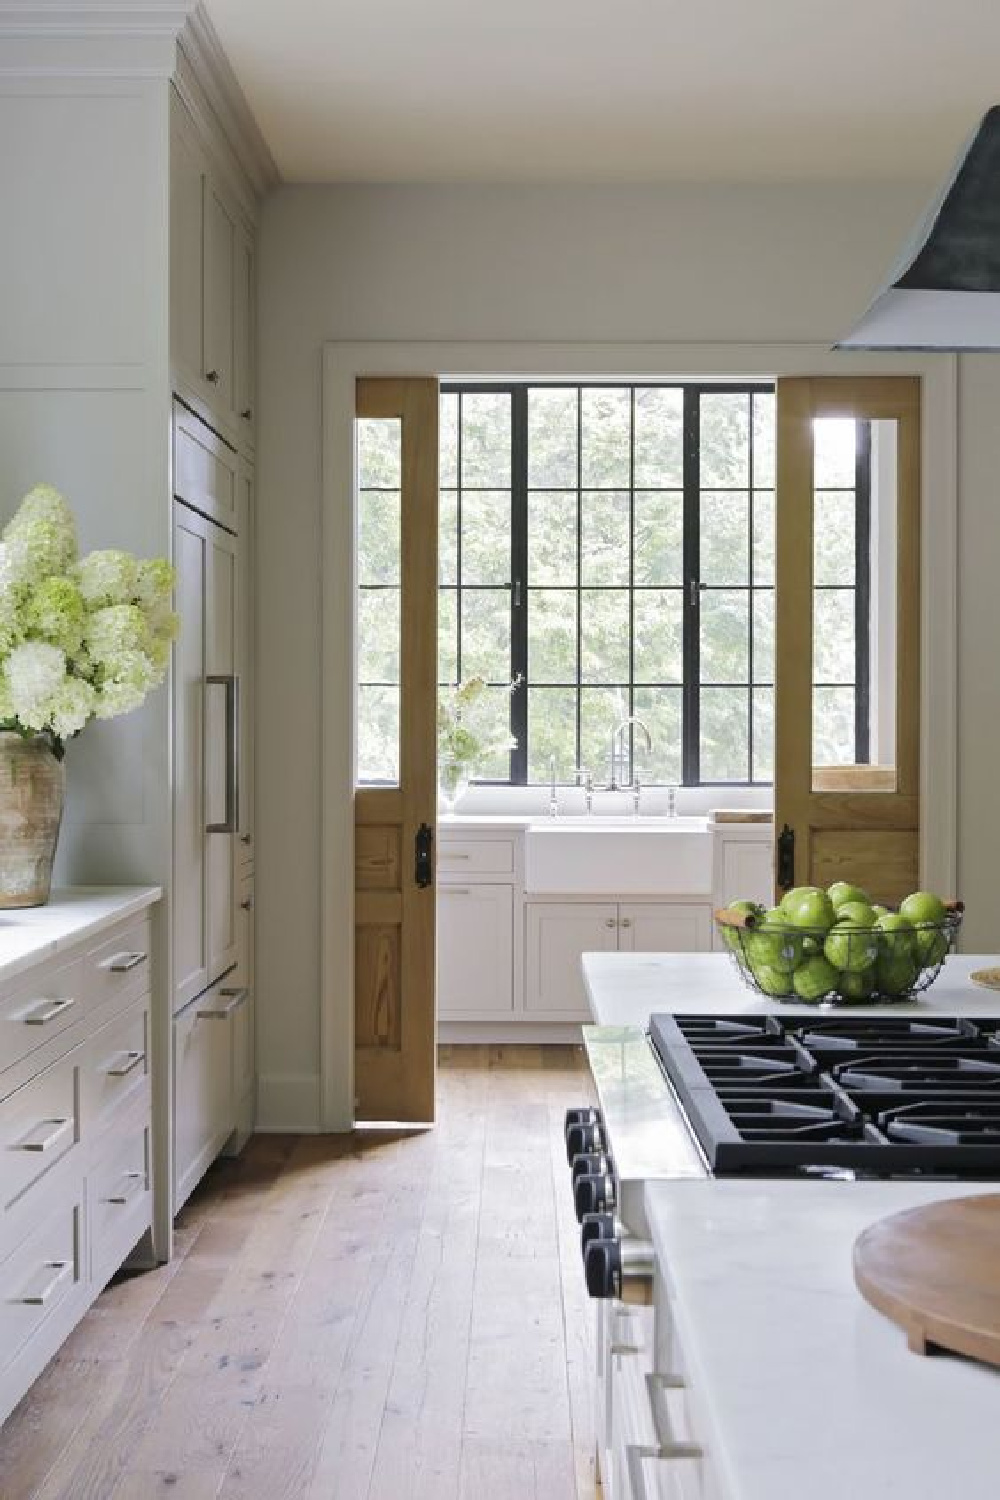 Breathtaking classic country kitchen with farm sink, wood tone pocket doors, steel windows, and putty cabinets - Rachel Halvorson. #countrykitchens #pocketdoors #kitchenarchitecture